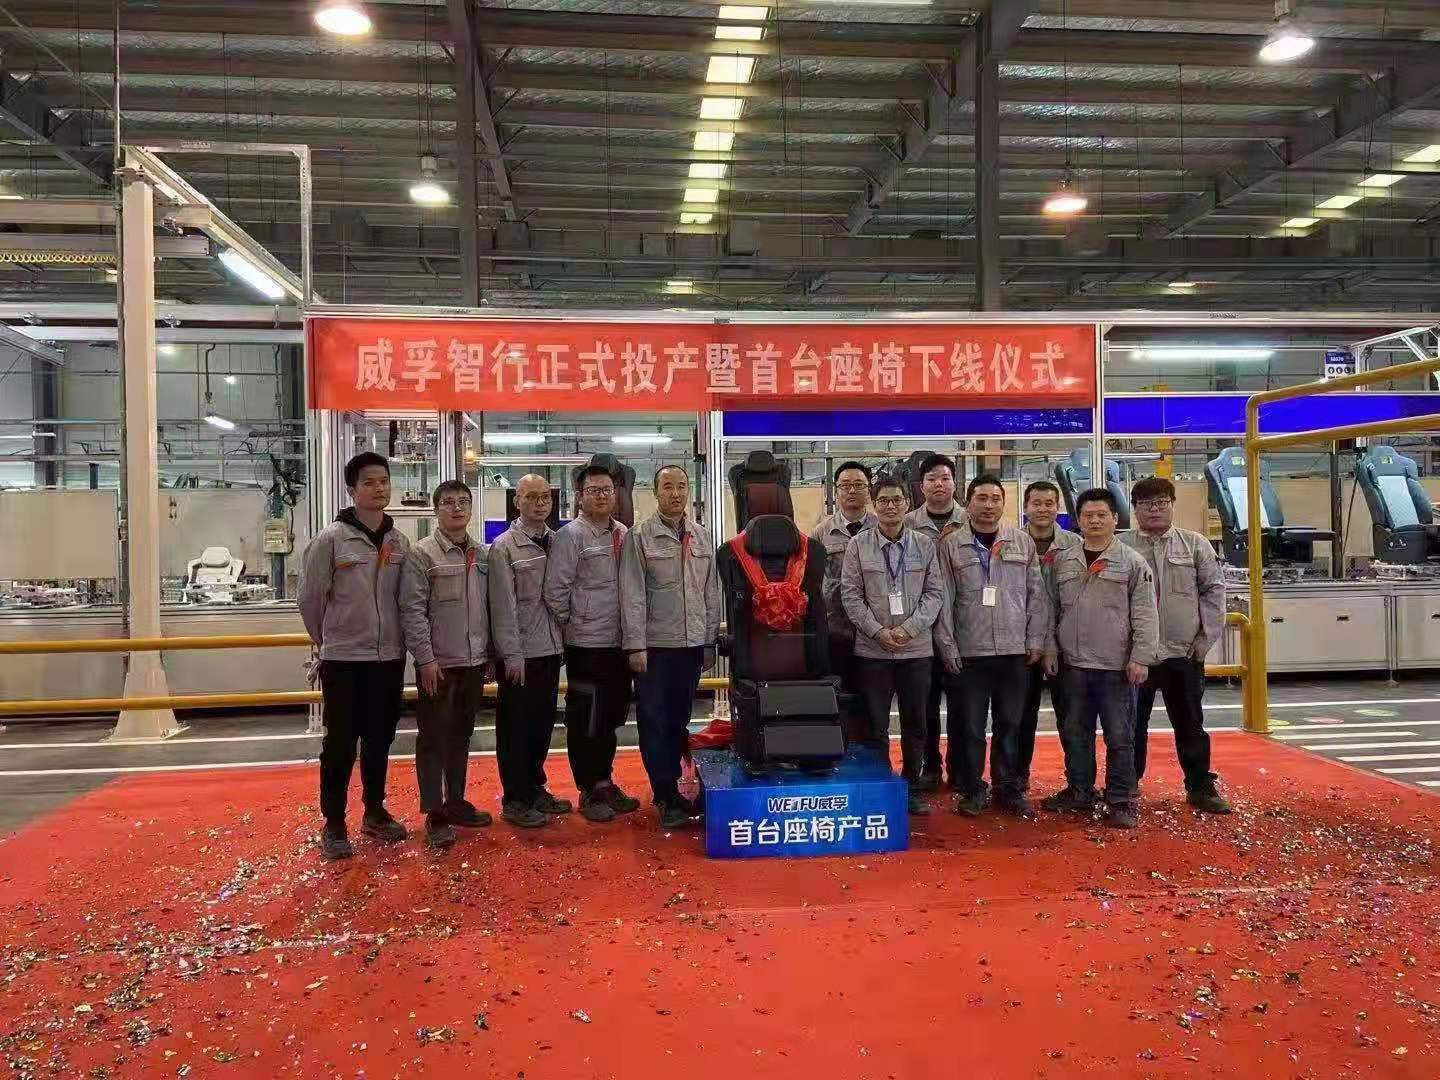 Wuxi Kawata company has carried out in-depth cooperation with Weifu Zhixing co.